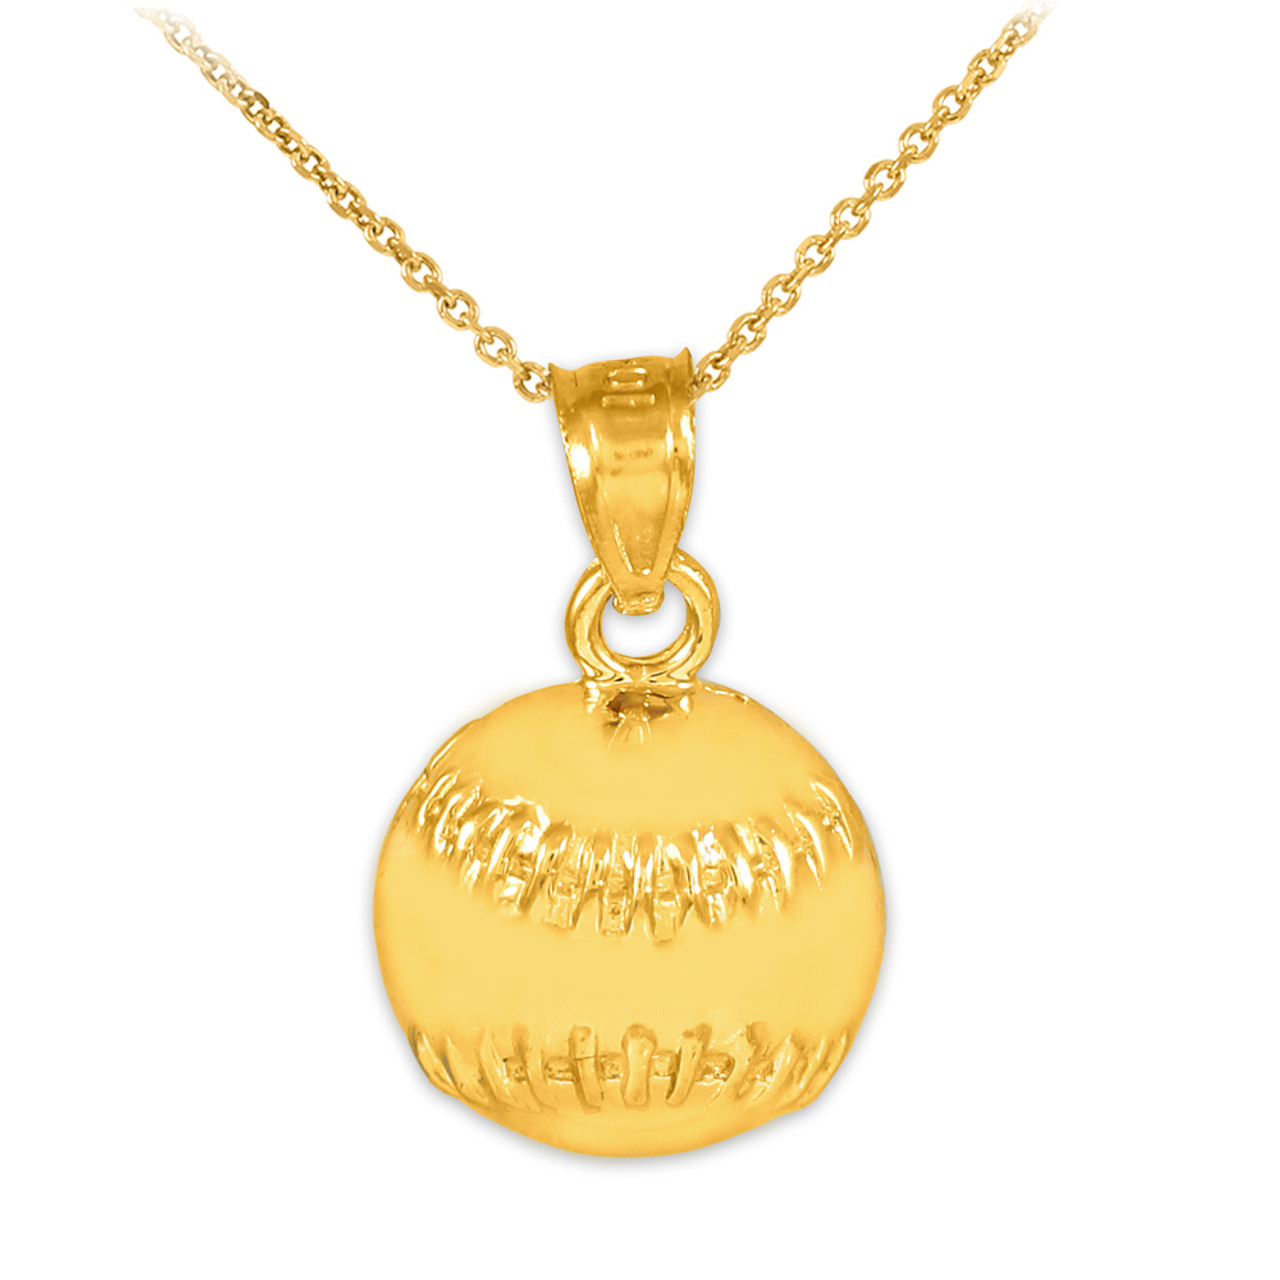 baseball for silver is accent hanging softball and with pin crafted catch enthusiast plated the glove crystal necklace to this any or perfect well ball wear fun